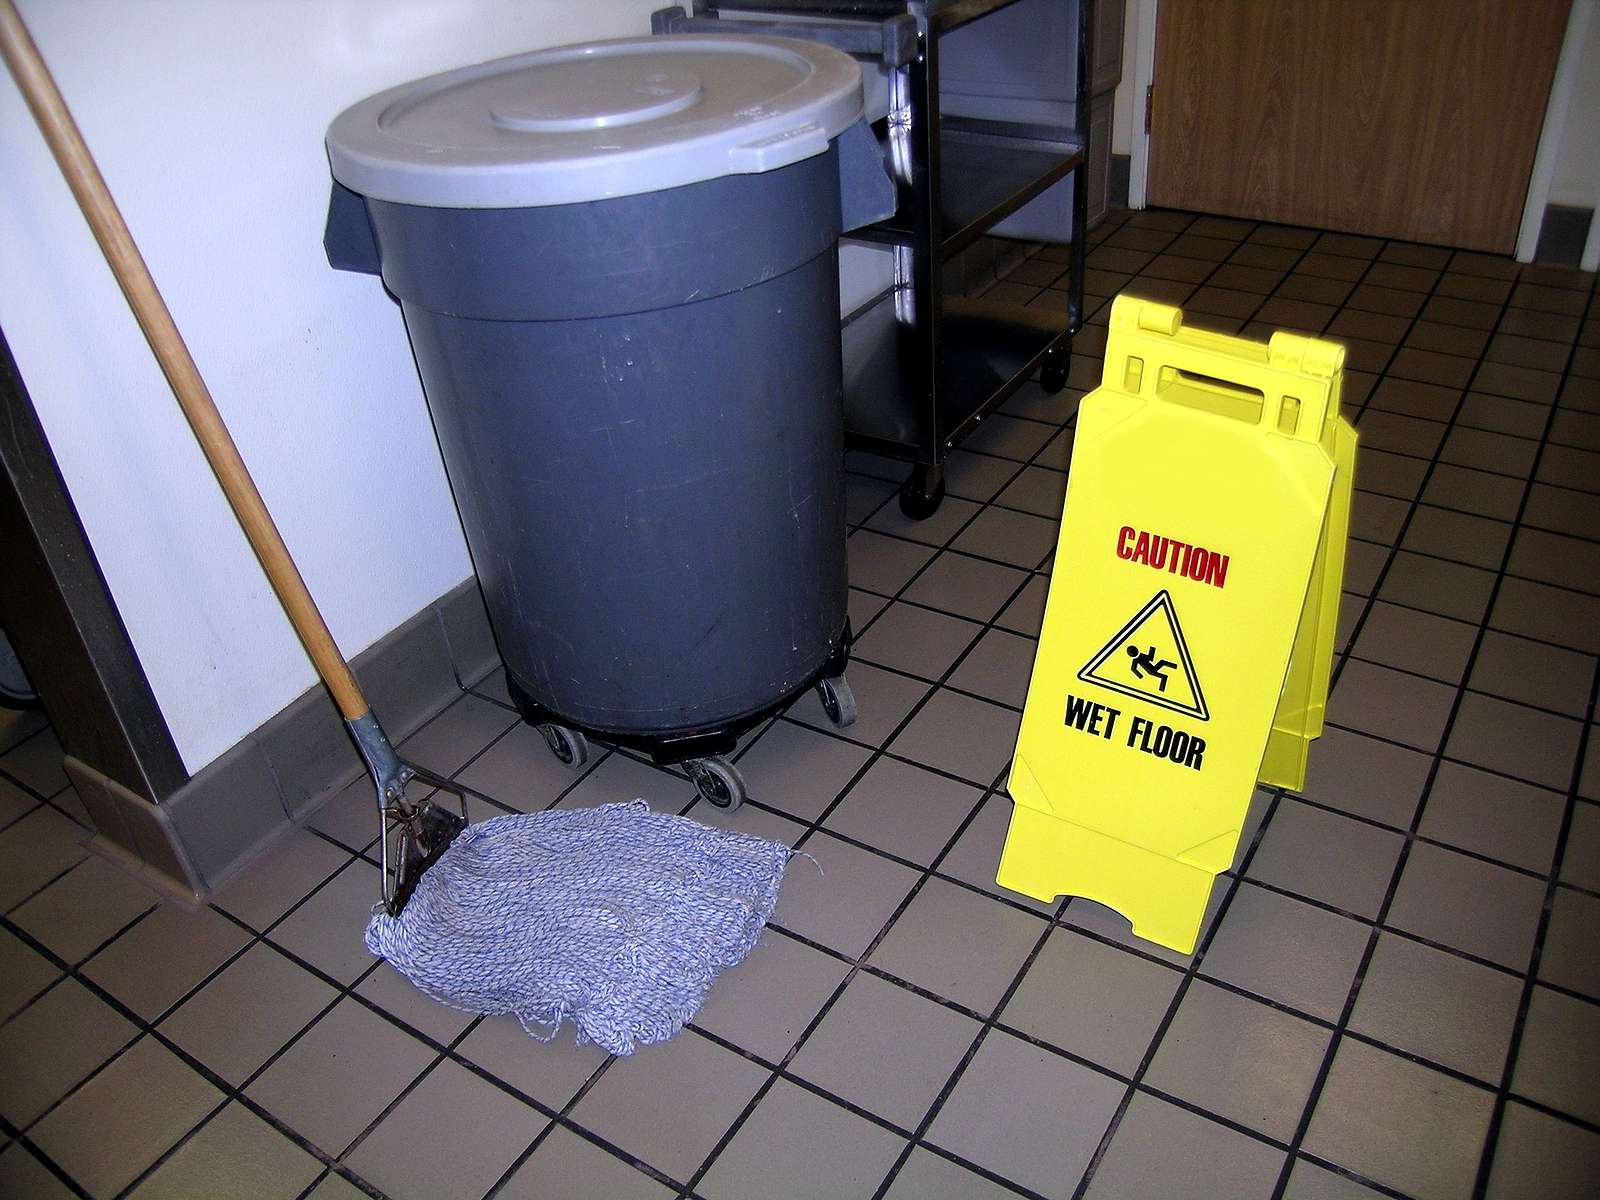 7 Tips for Hiring the Right Janitorial Services Company